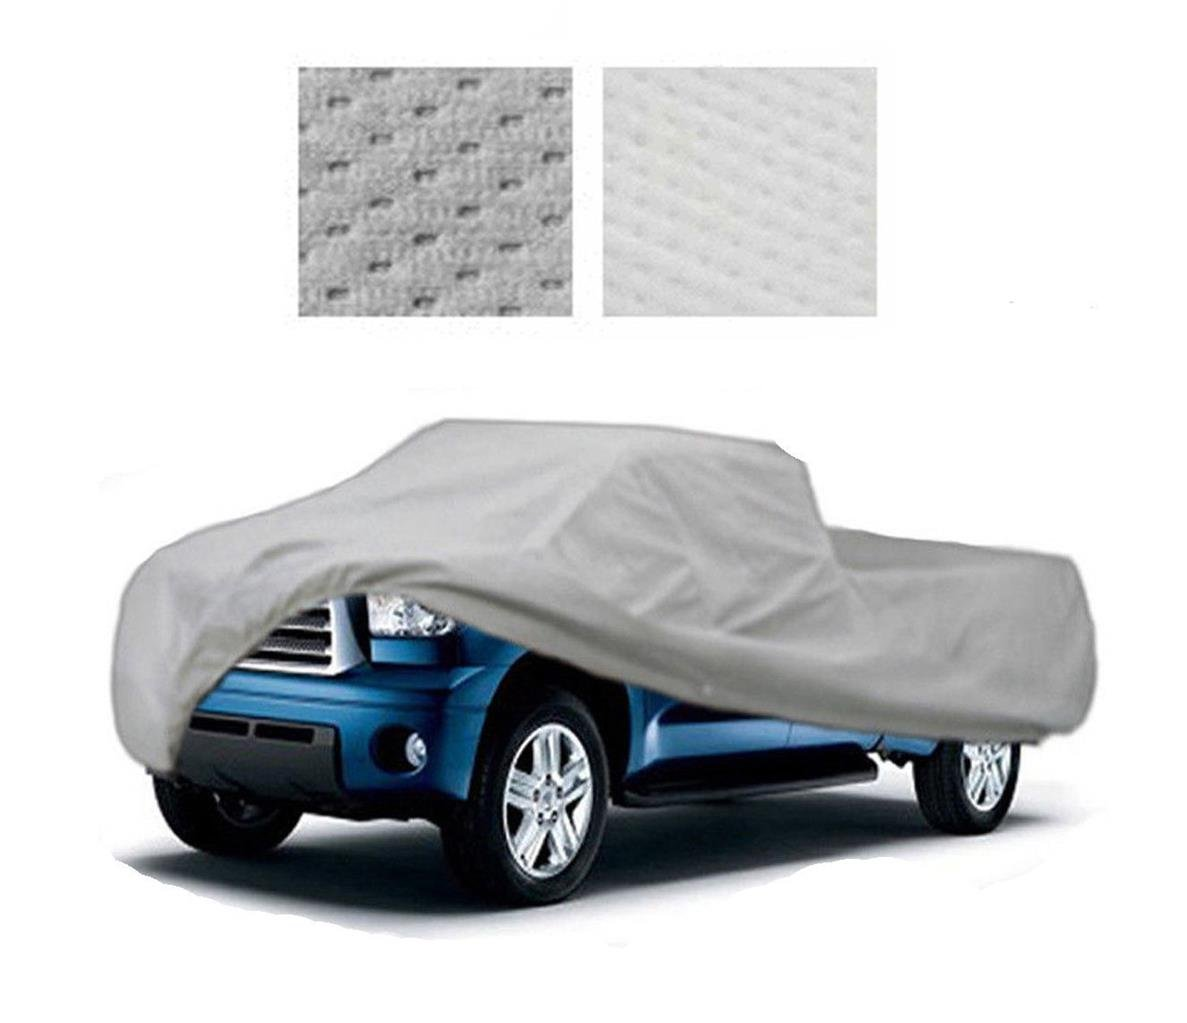 5 Layer Heavy-Duty Fleece Lined Truck Car Cover up to 16L x 65W x 58H and is for Mini Pick Up Truck with a Regular Cab and Regular Bed.